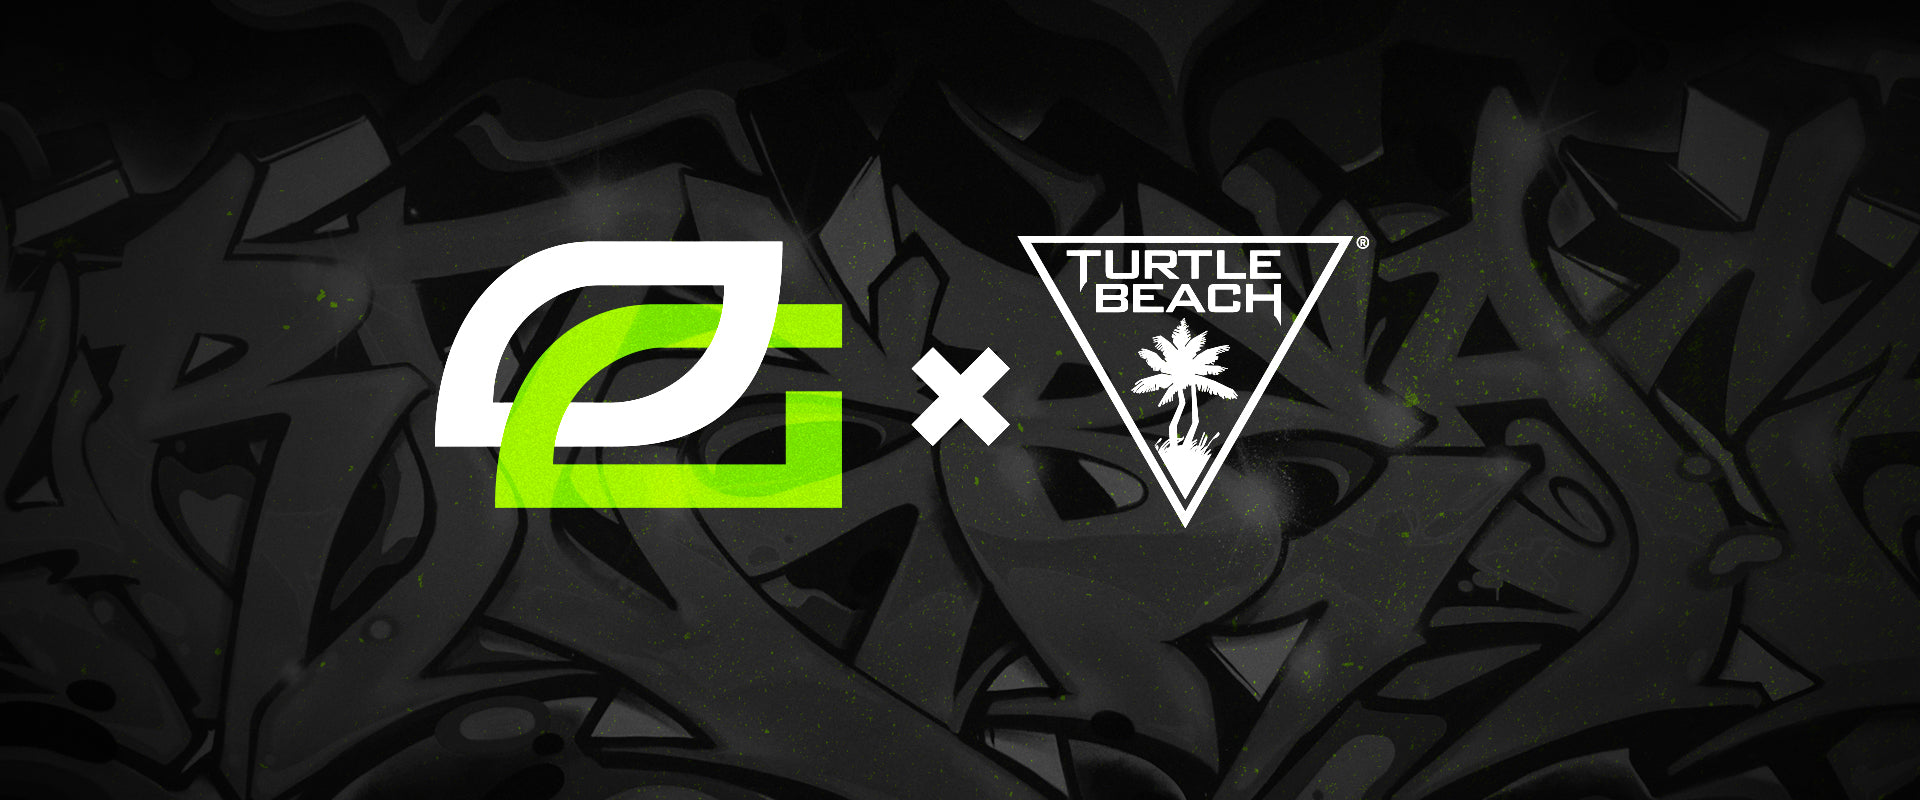 turtle beach extends partnership with optic gaming